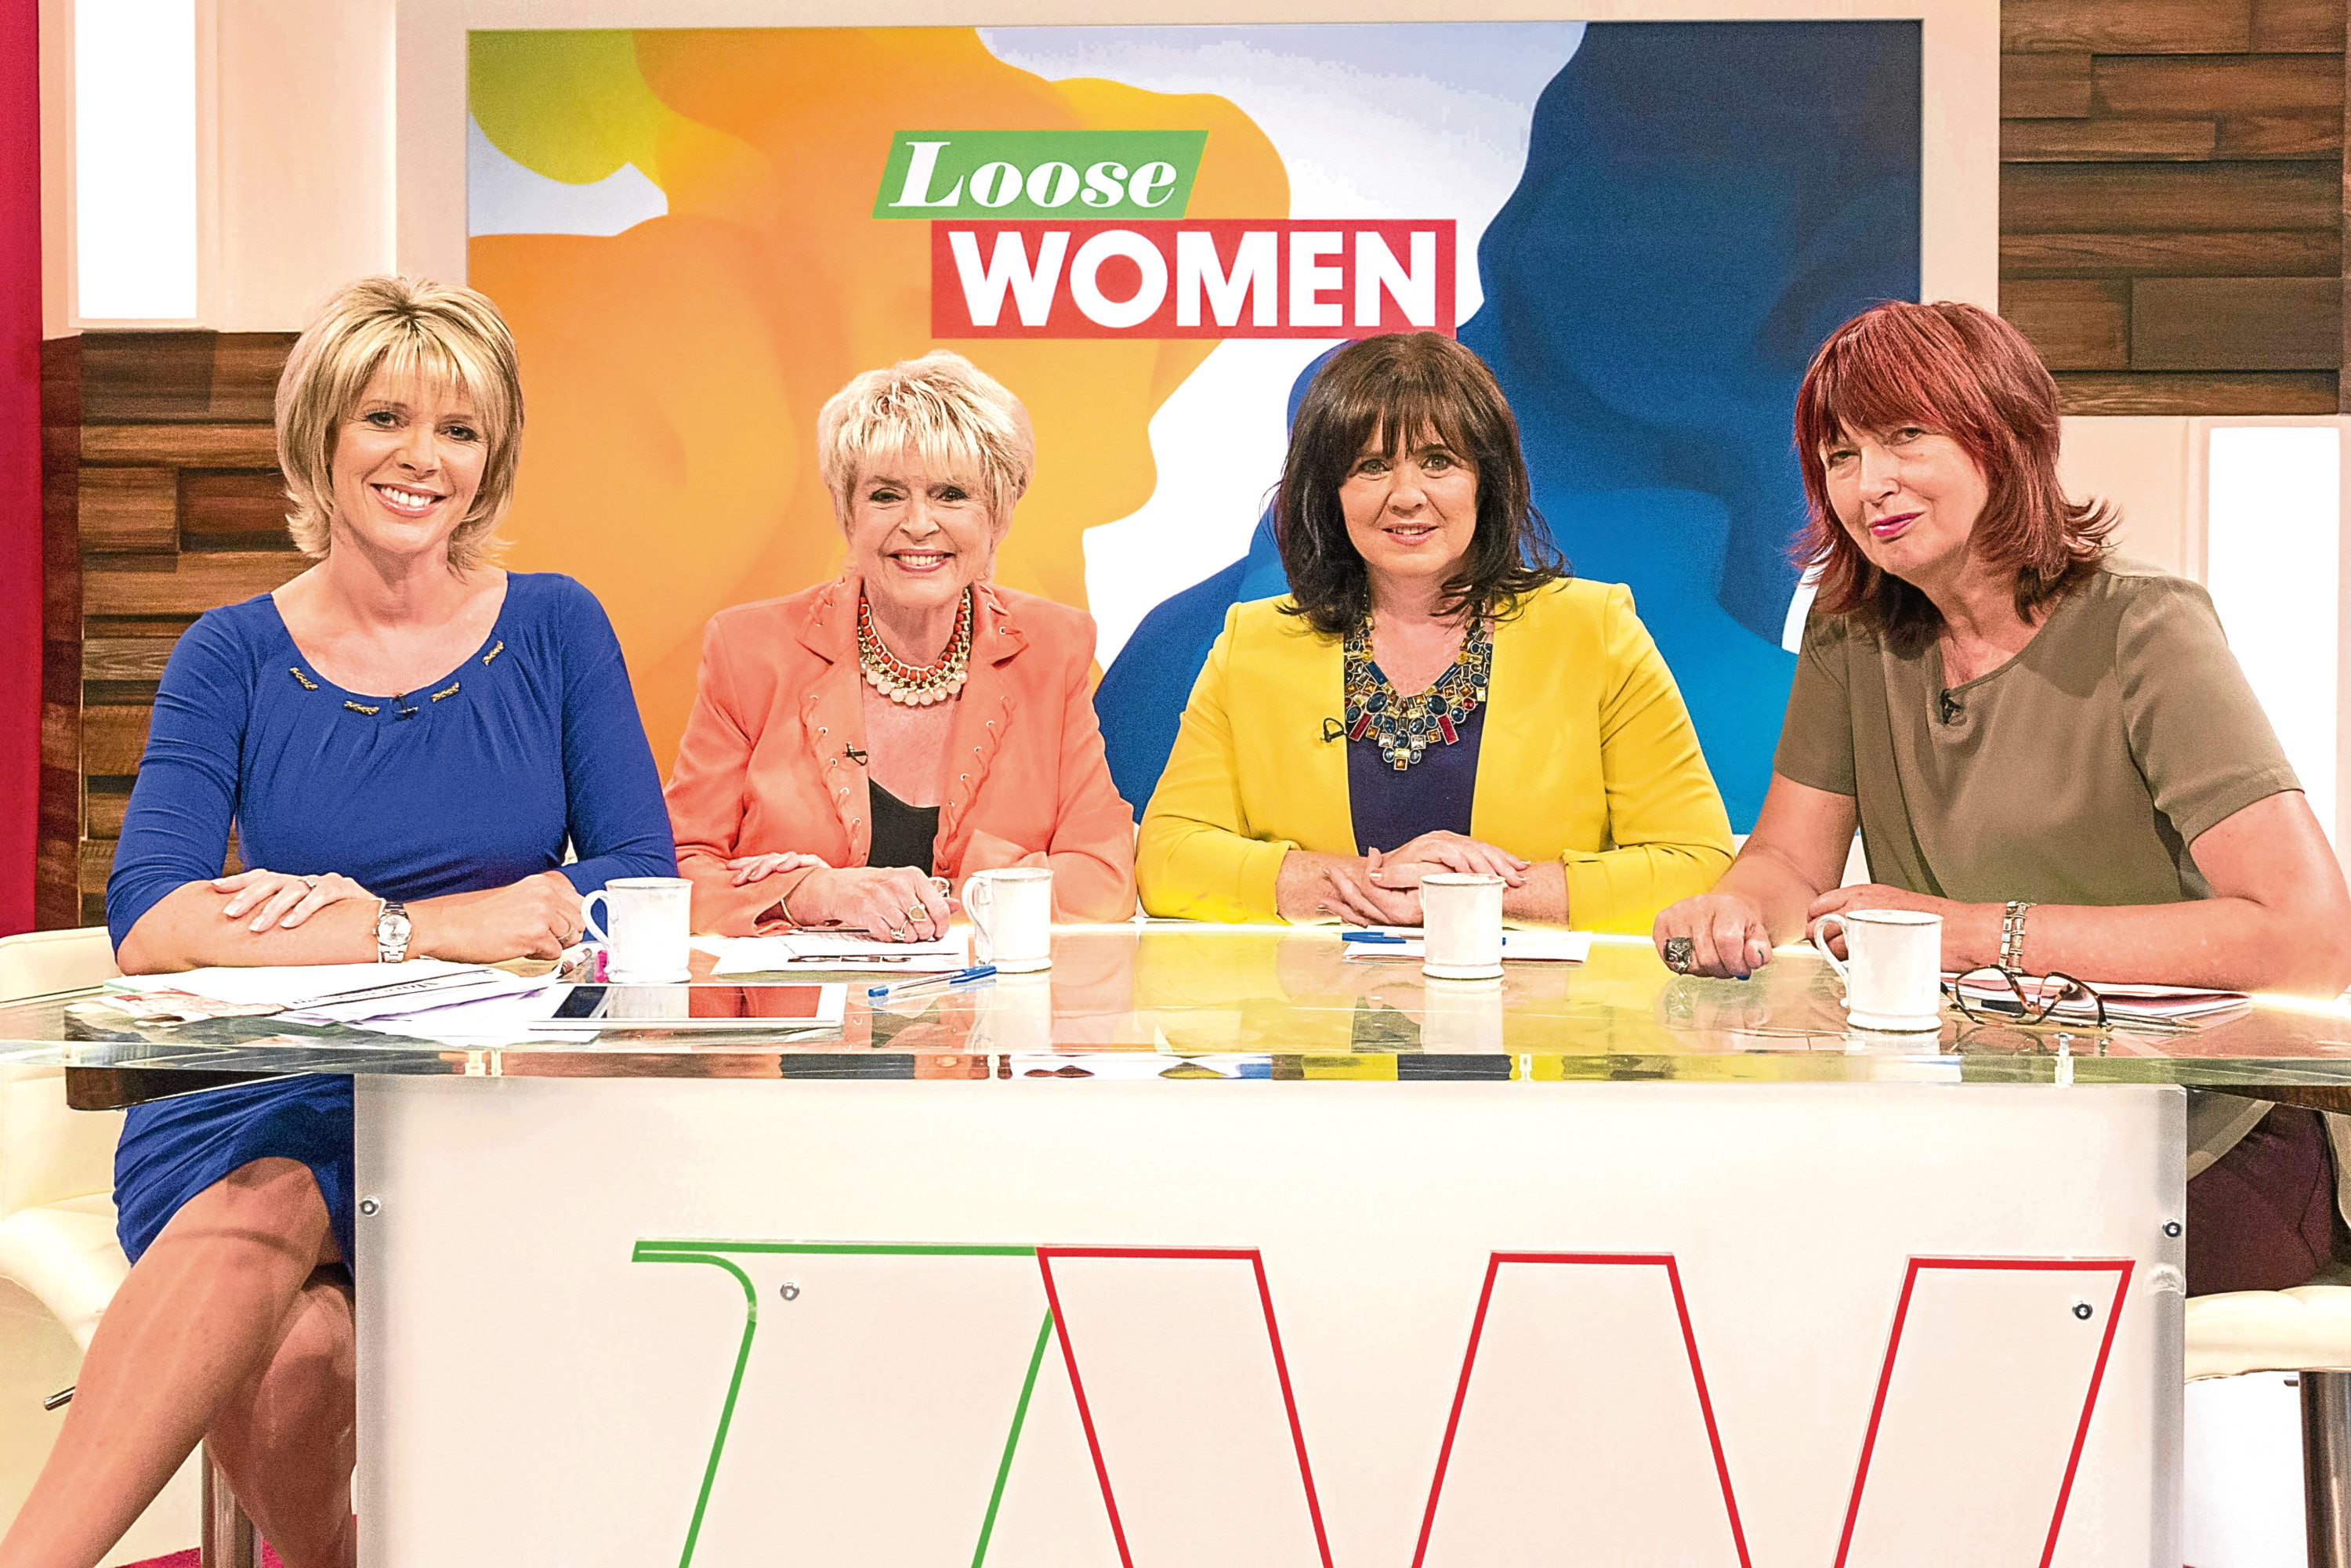 Ruth Langsford, Gloria Hunniford, Coleen Nolan and Janet Street-Porter on 'Loose Women' (Ken McKay/ITV)